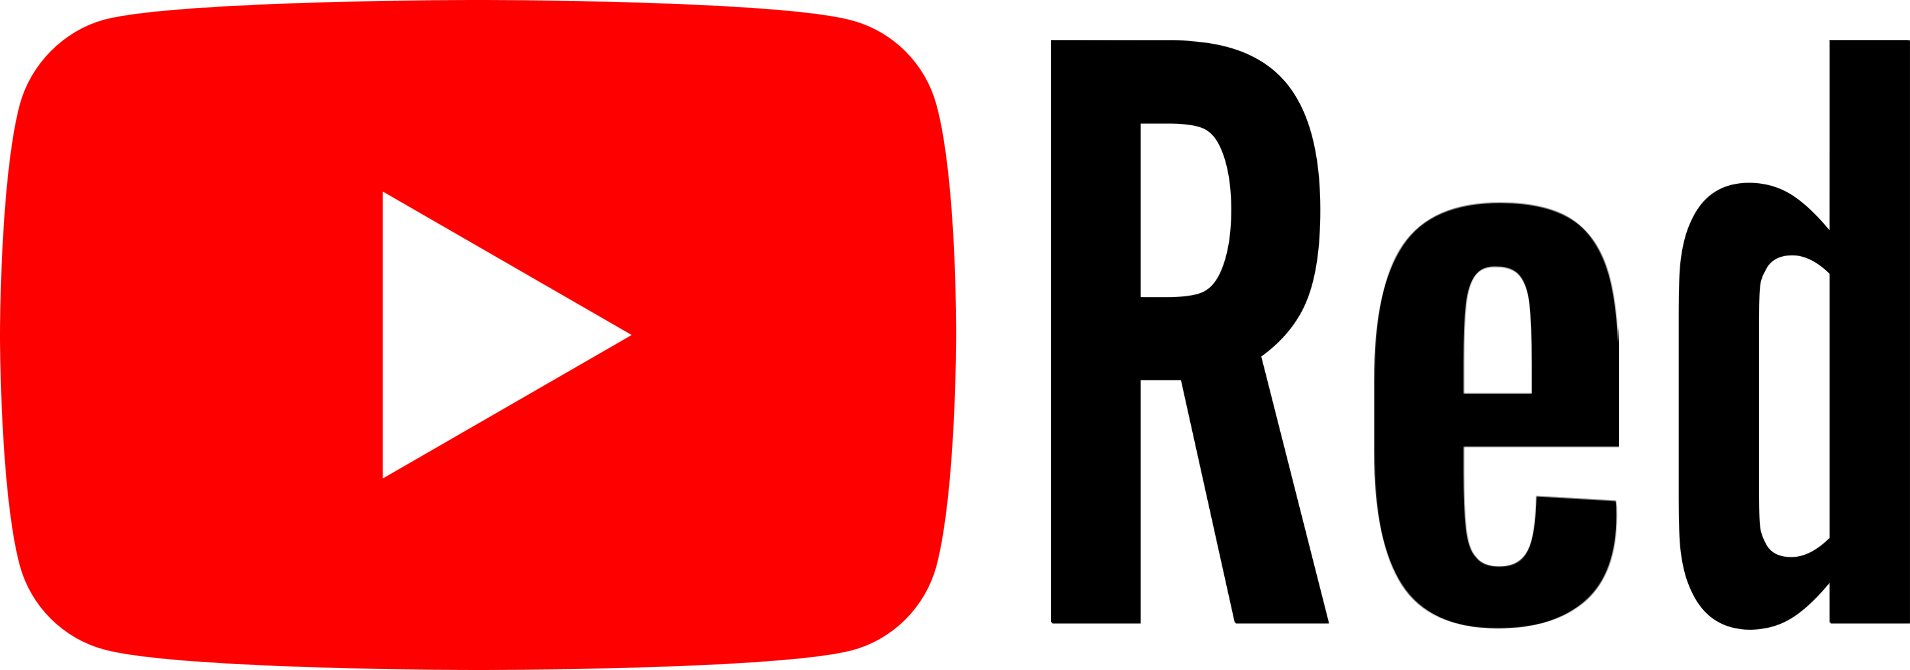 Youtube logo png. Image red logopedia fandom